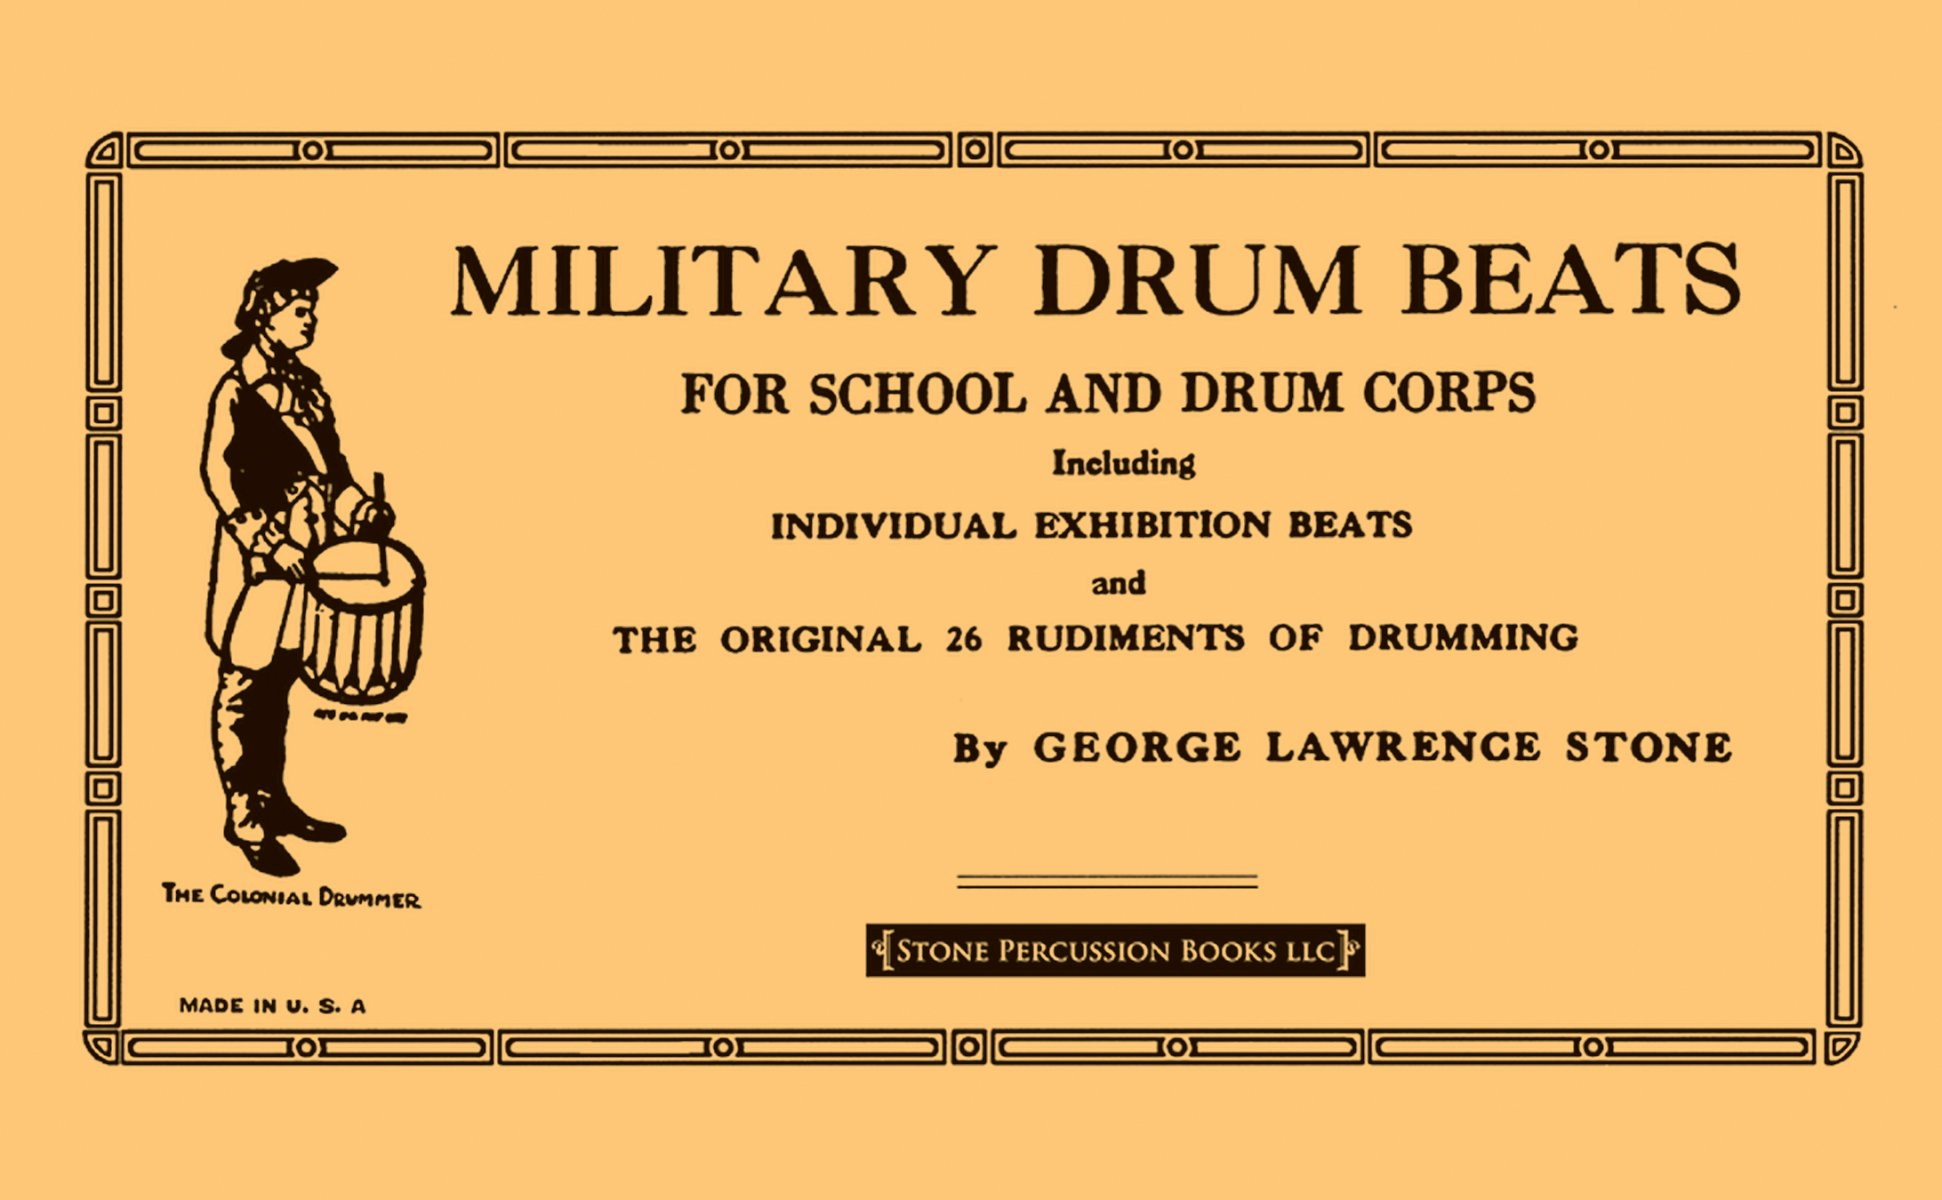 Military Drum Beats: For School and Drum Corps- Including Individual Exhibition Beats and the Original 26 Rudiments of Drumming